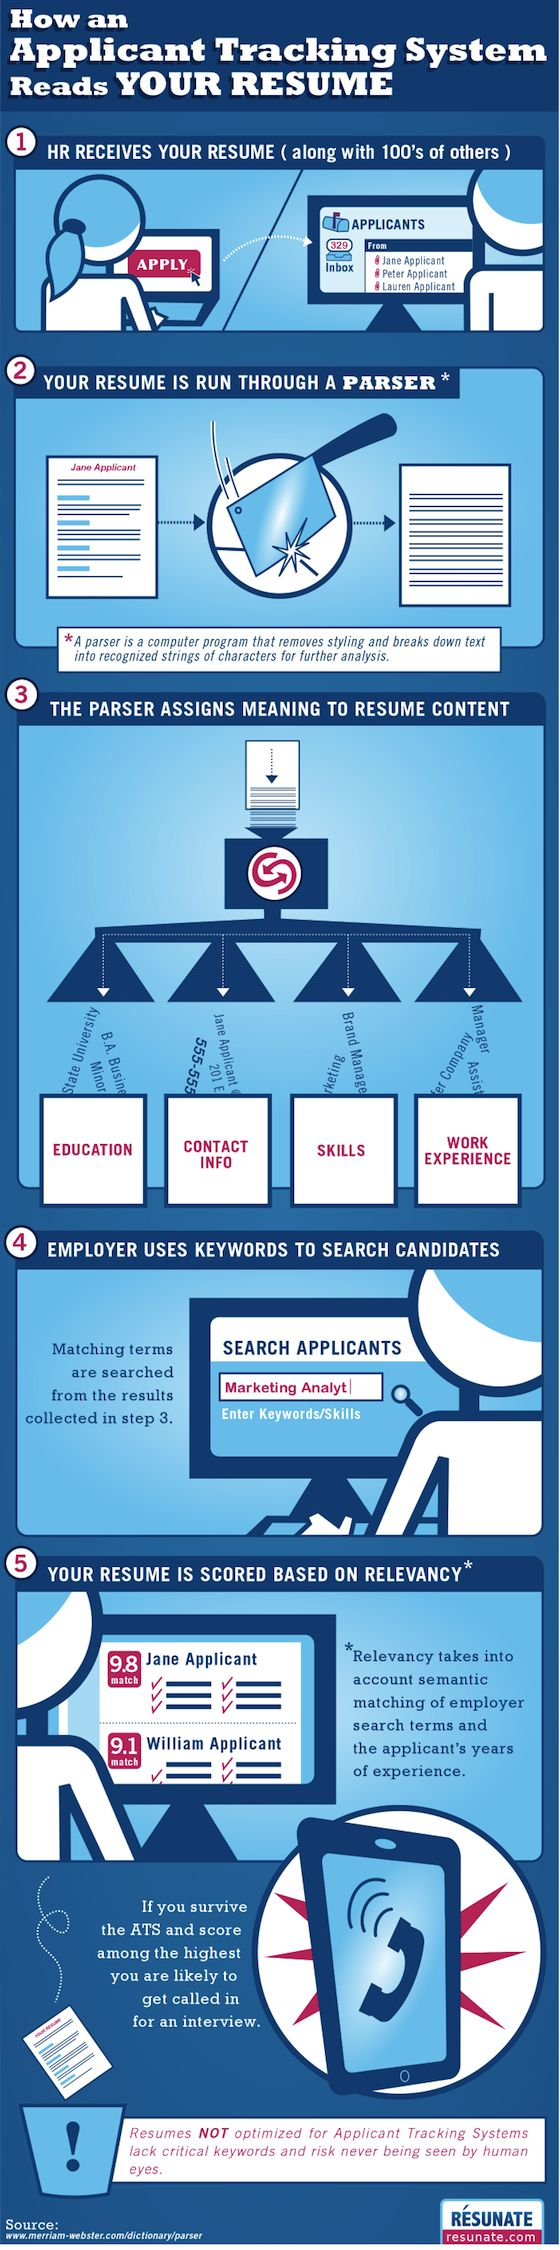 best ideas about apply job job search tips infographic what happens to your resume when you apply to jobs online use key